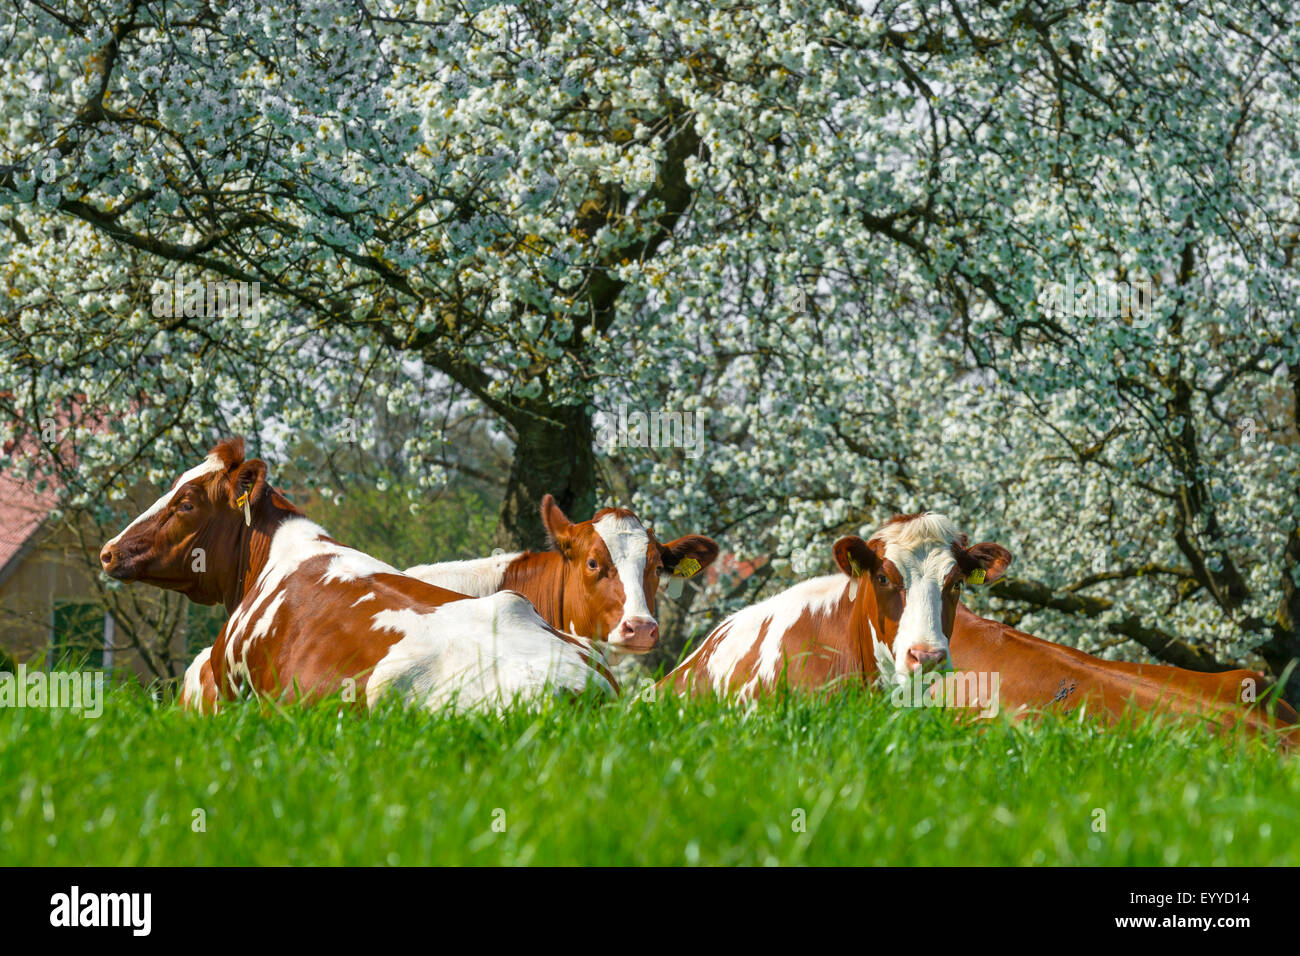 domestic cattle (Bos primigenius f. taurus), cows ruminating on grass before blooming cherry trees, Germany, North Stock Photo